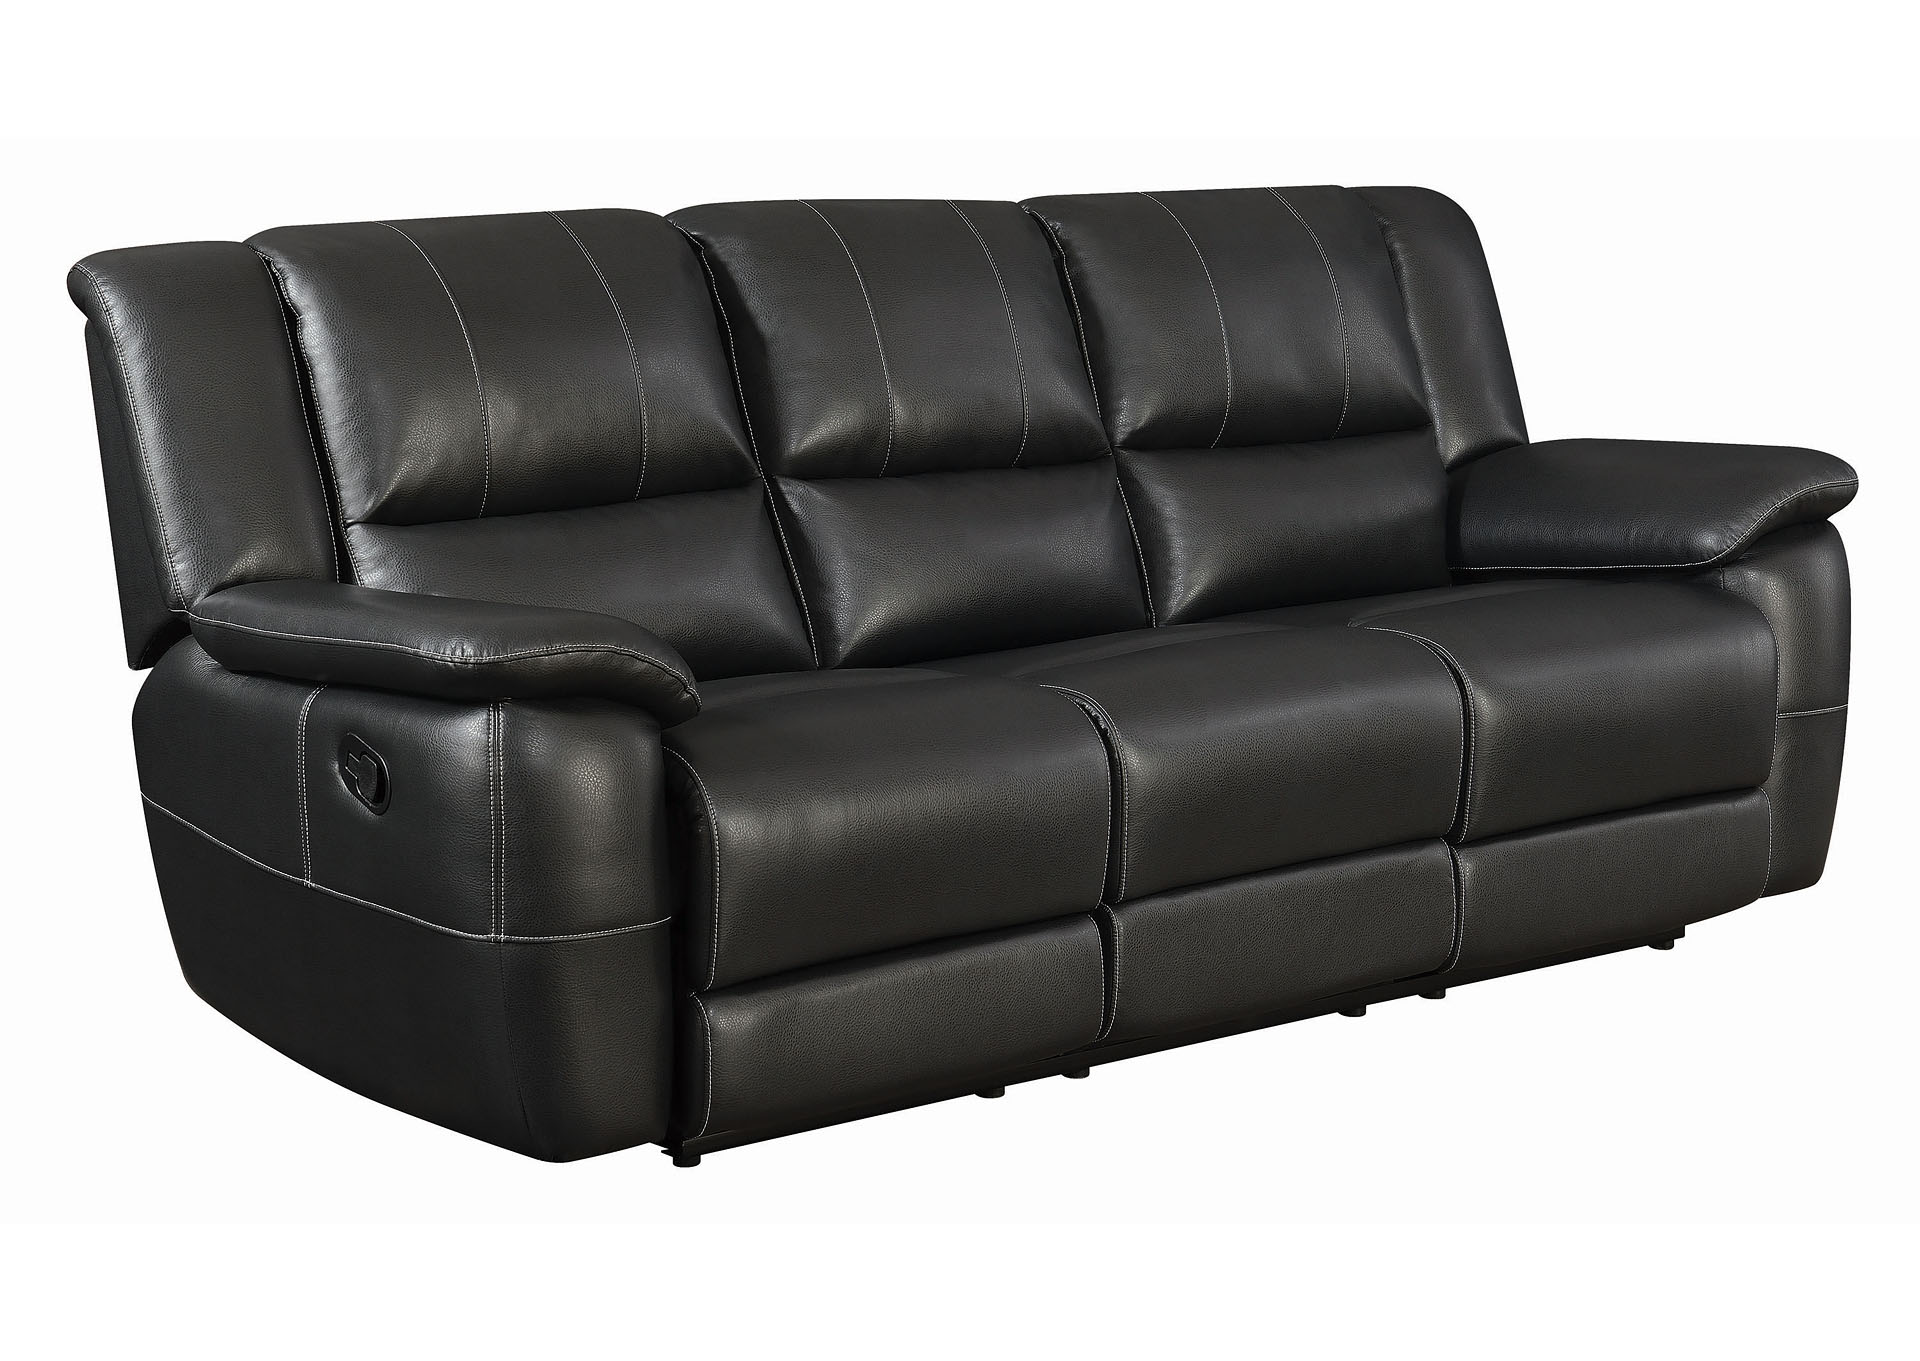 Lee Transitional Motion Sofa,Coaster Furniture